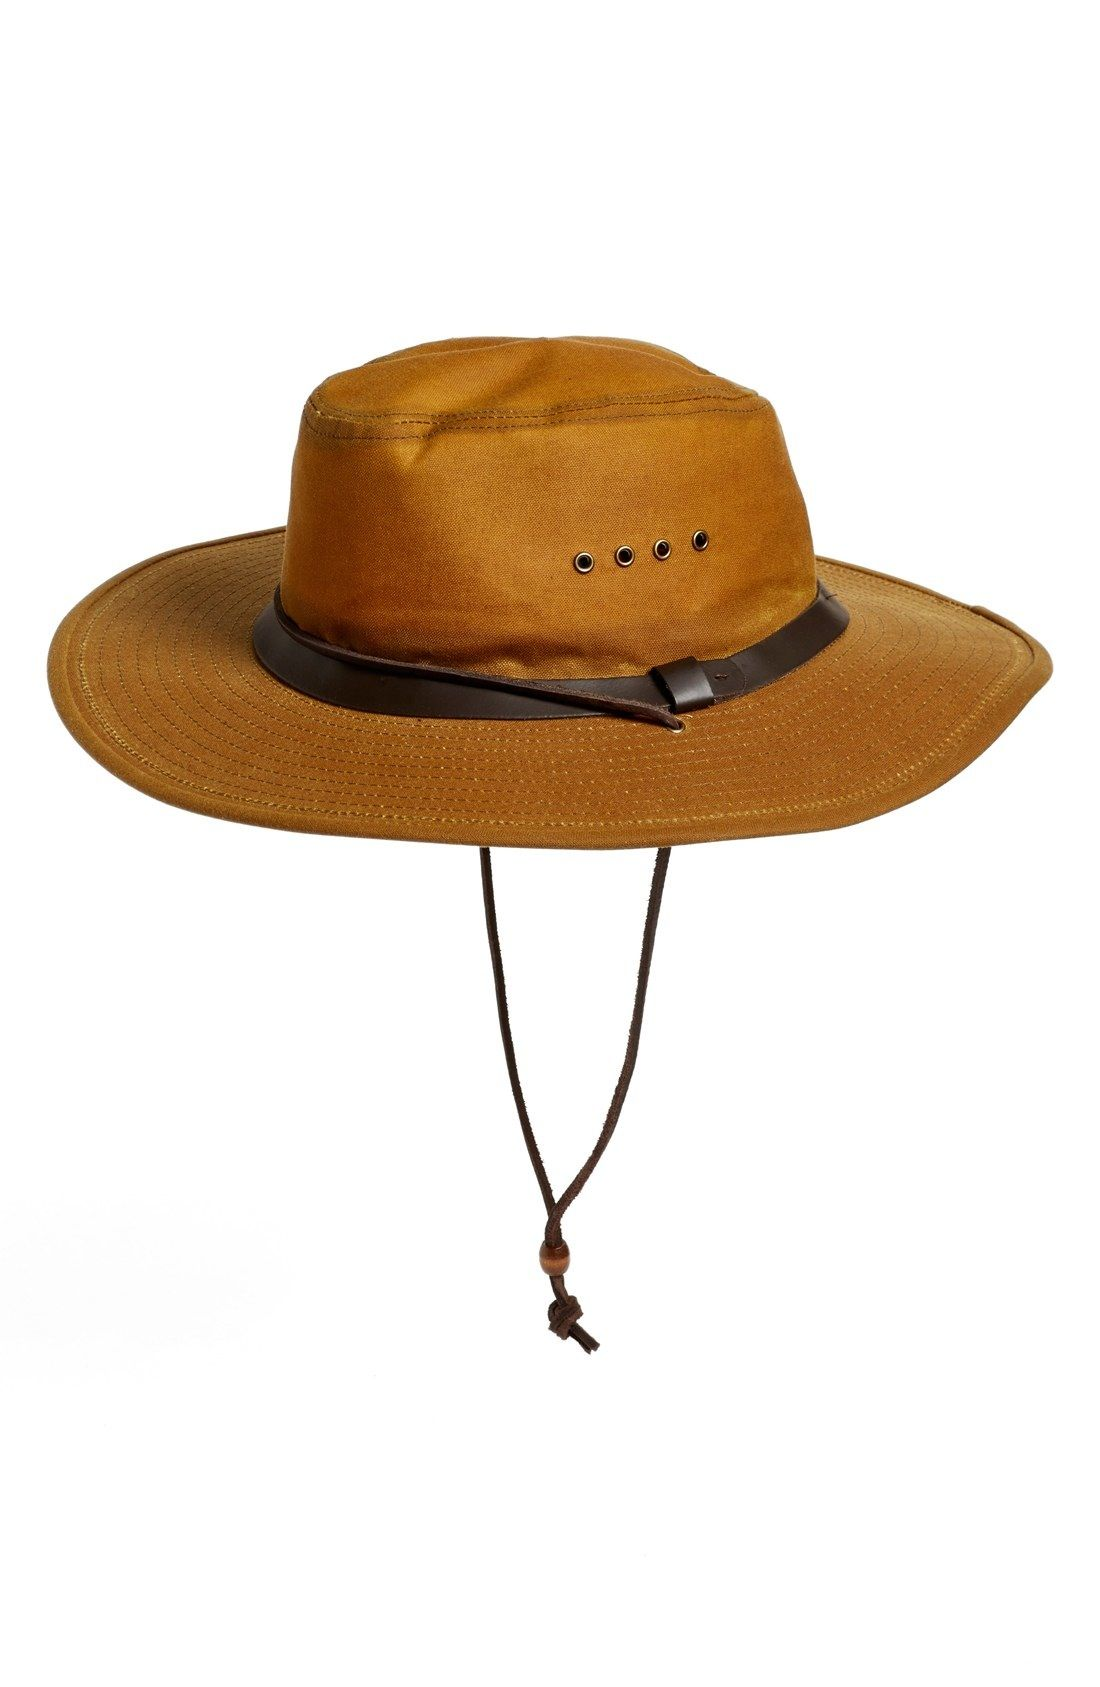 Filson Tin Cloth Bush Hat available … | Outdoors: Hunting, Fishing ...